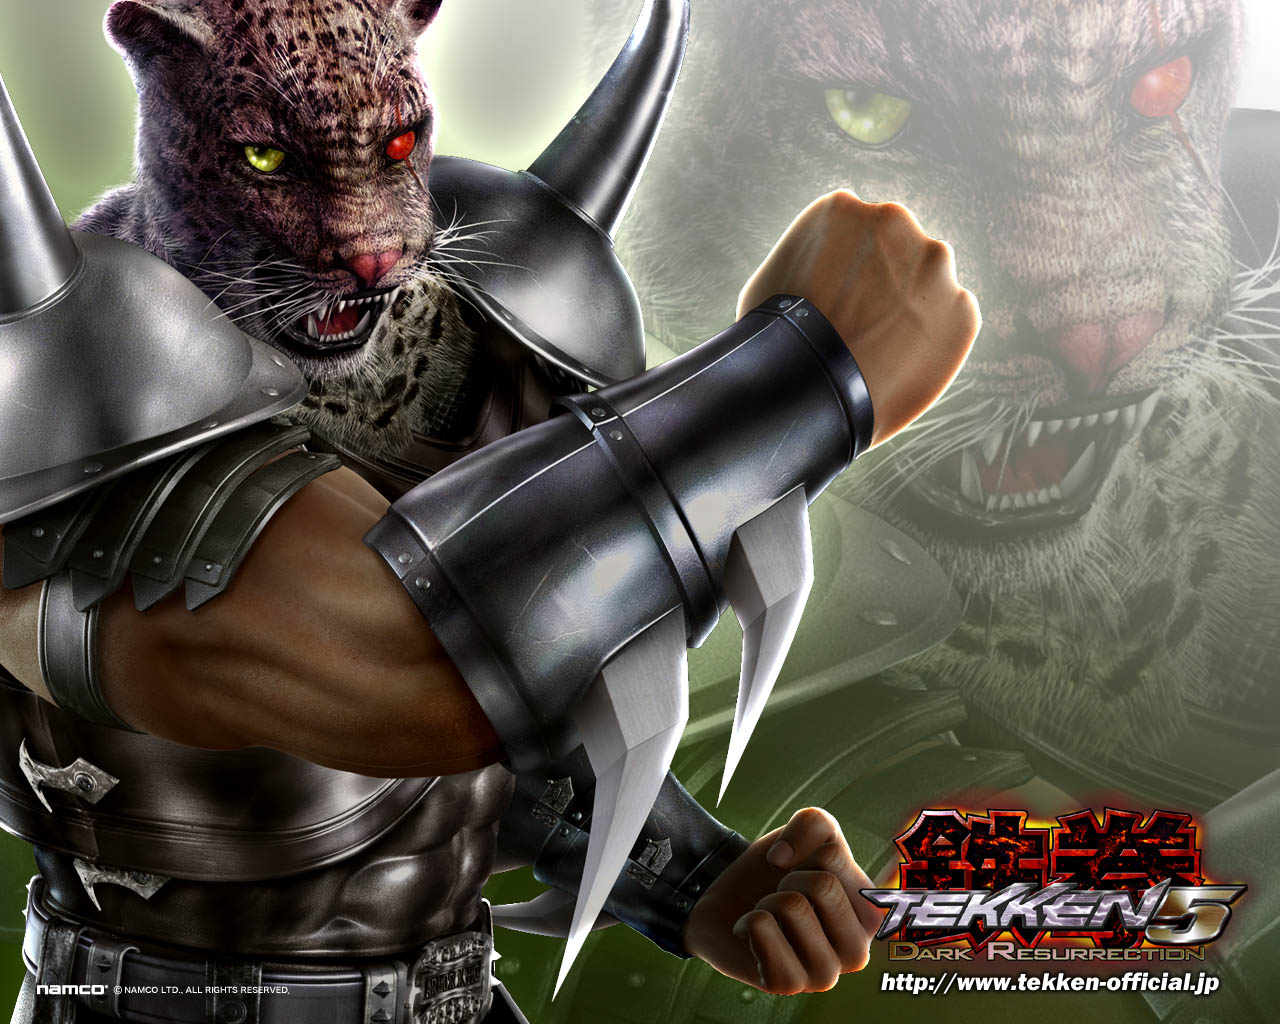 King   Tekken 5 Dark Resurrection Wallpaper Armor King Wallpaper 1280x1024